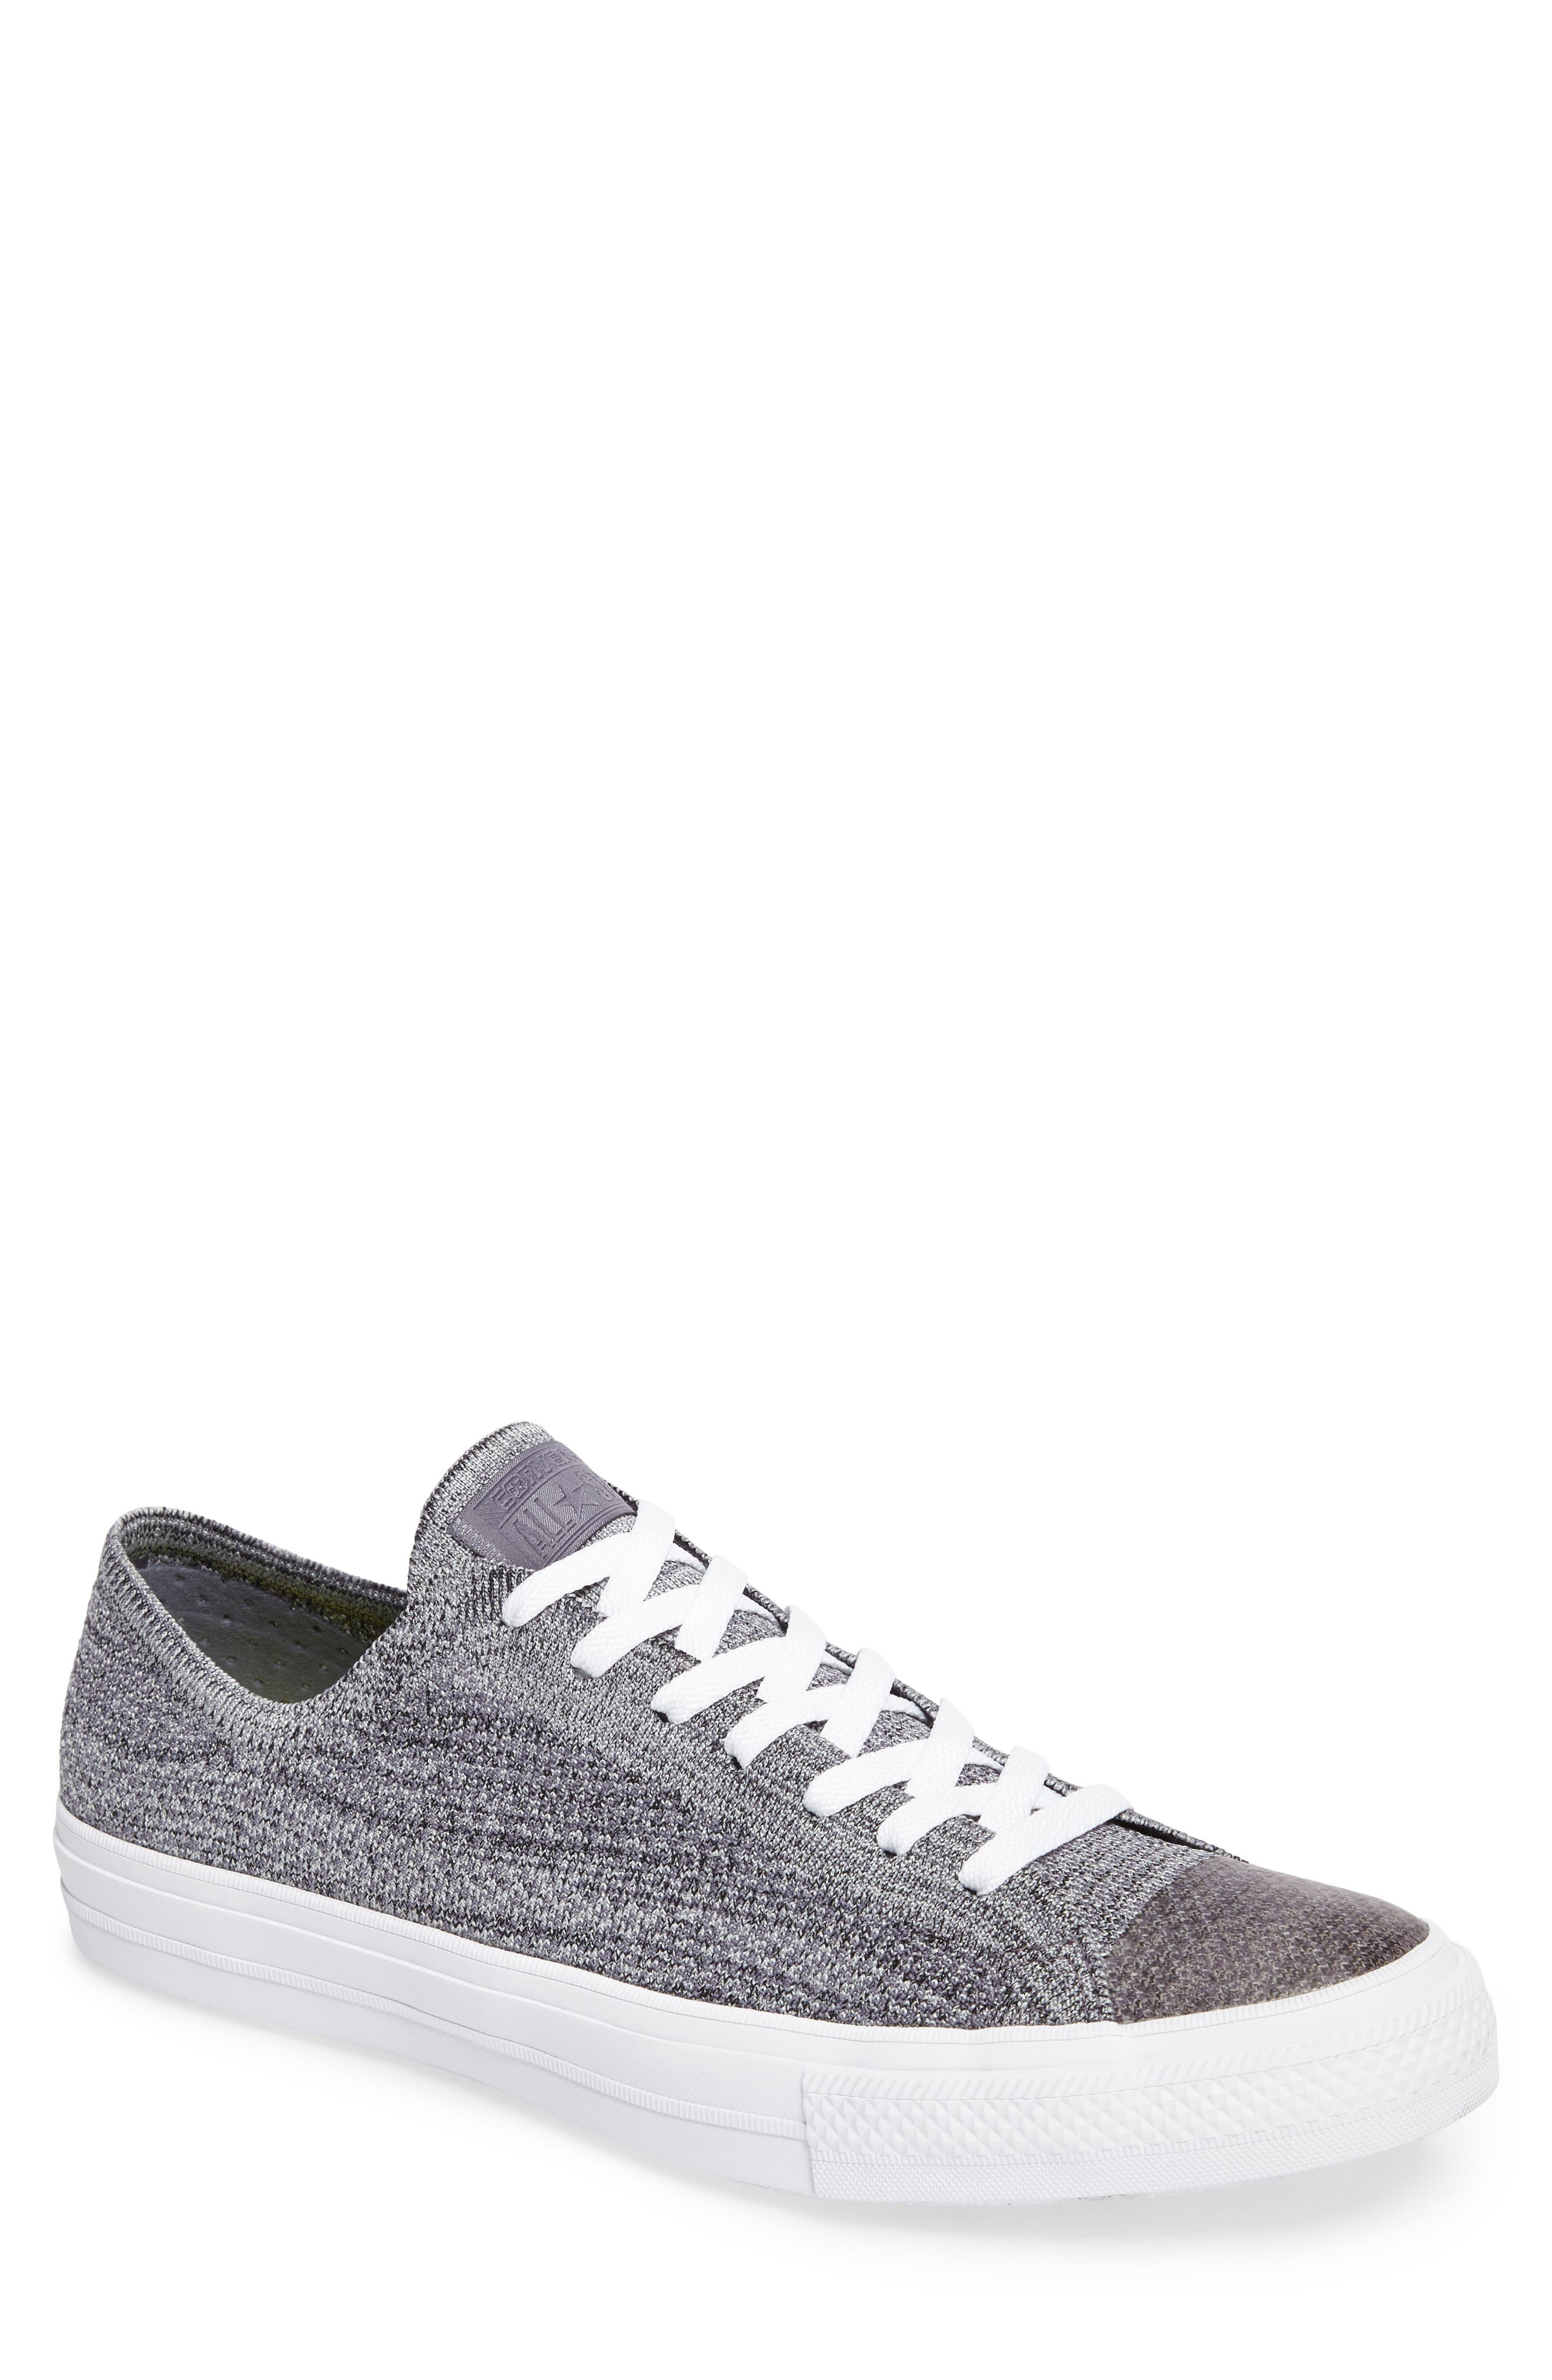 Chuck Taylor<sup>®</sup> All Star<sup>®</sup> Flyknit Sneaker,                             Main thumbnail 1, color,                             Carbon